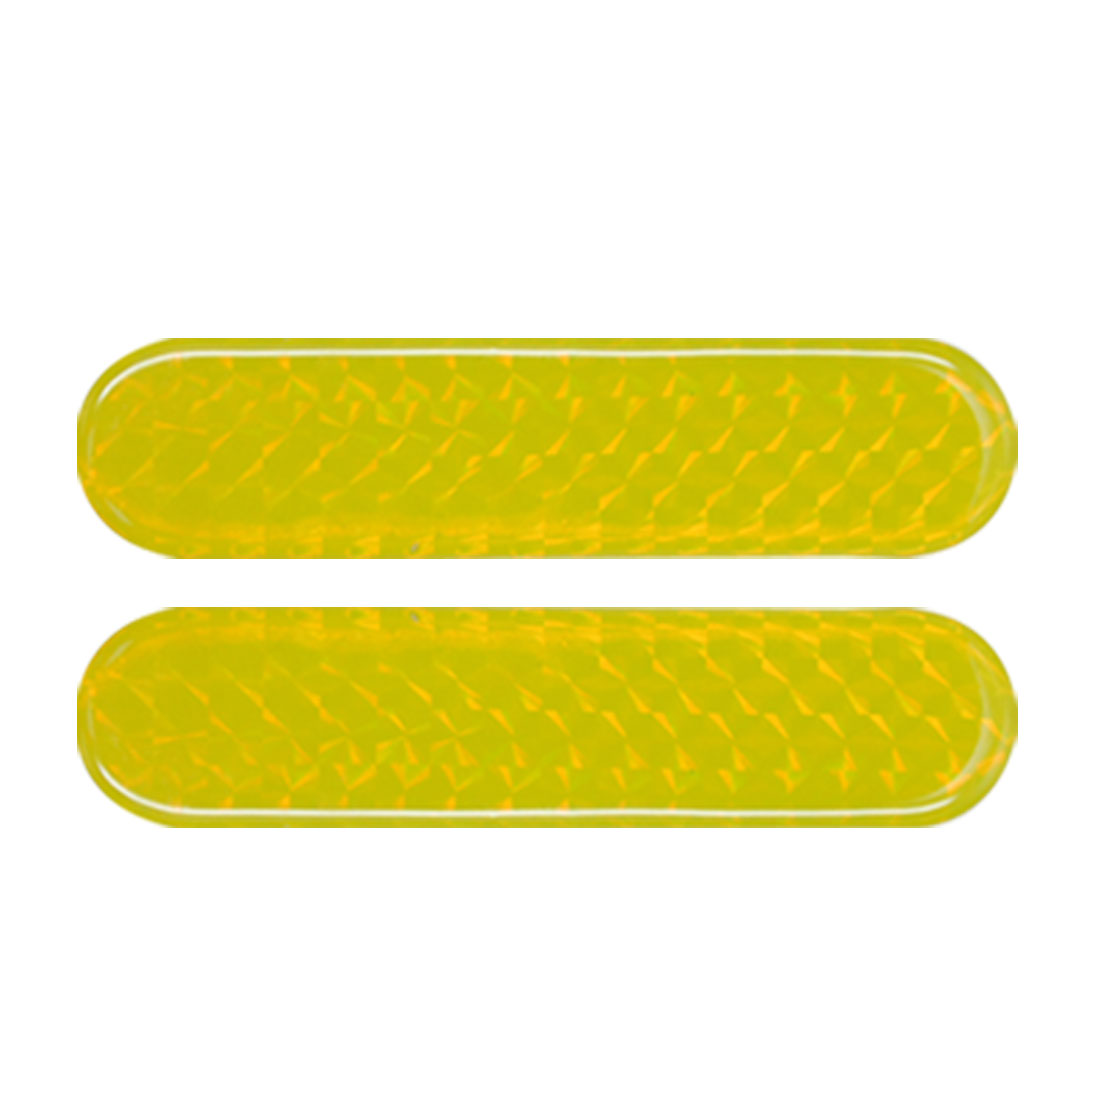 For Truck Safety Light Reflectors Yellow Stickers